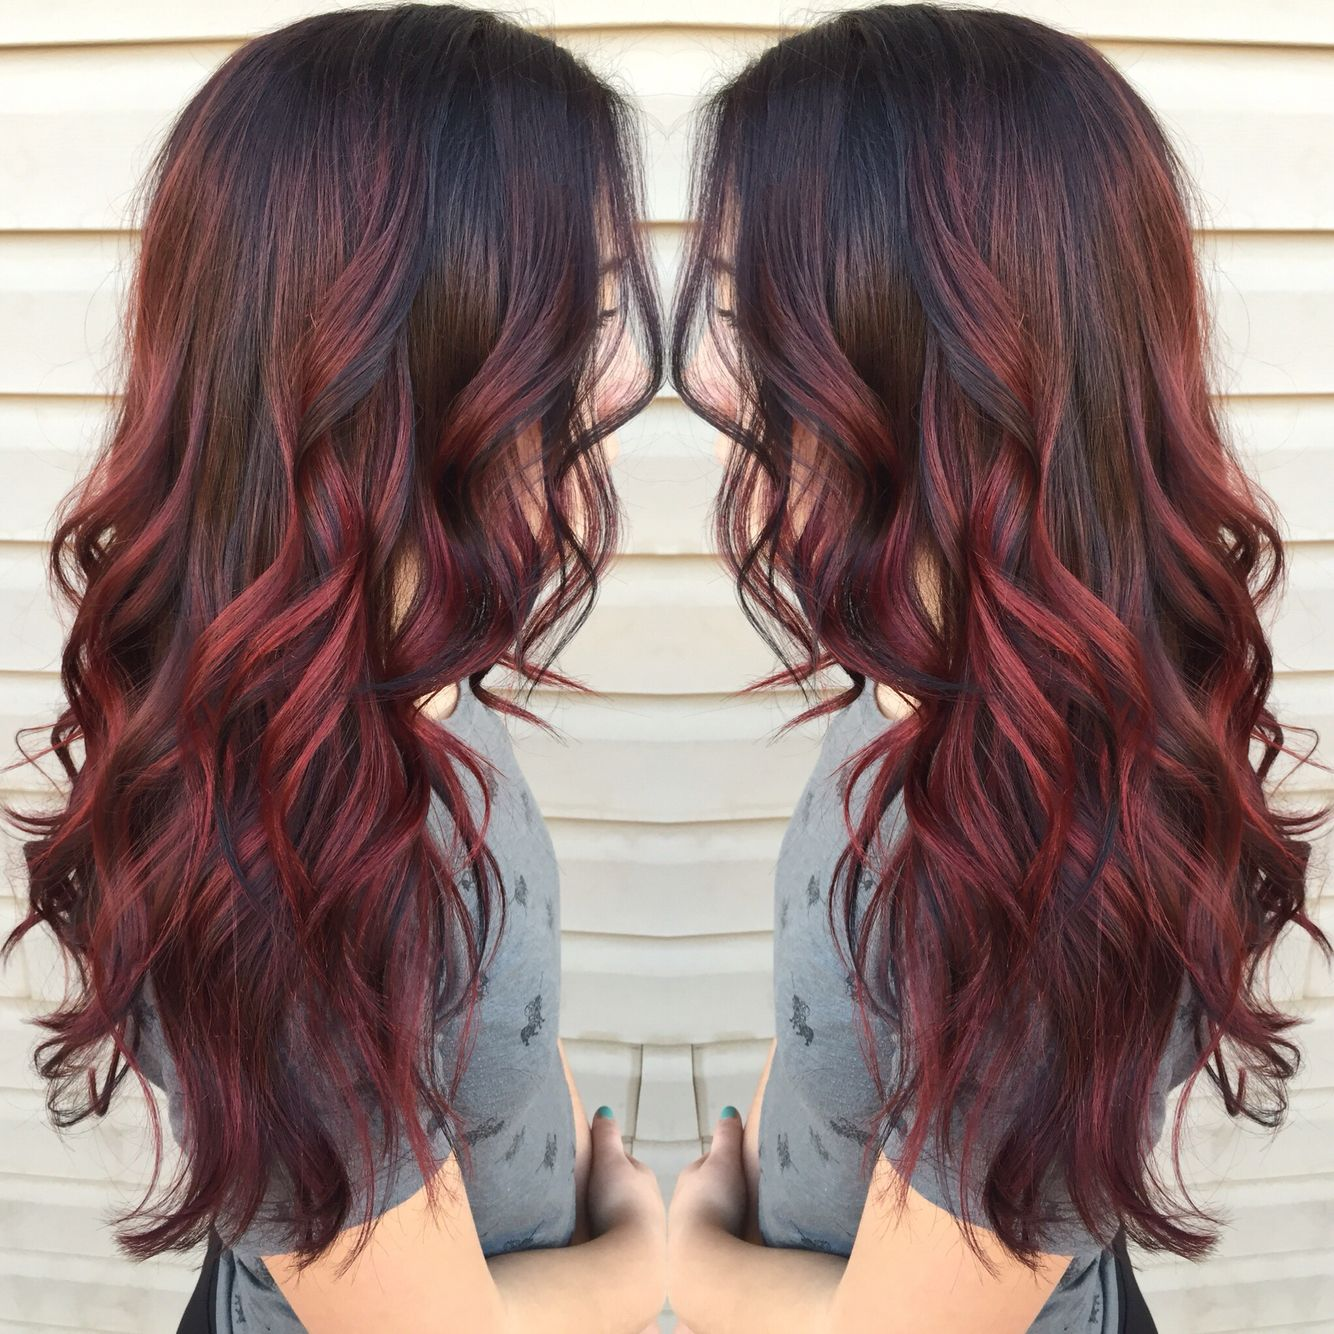 Red balayage - this would be perfect. I'm look for several ... - photo#43